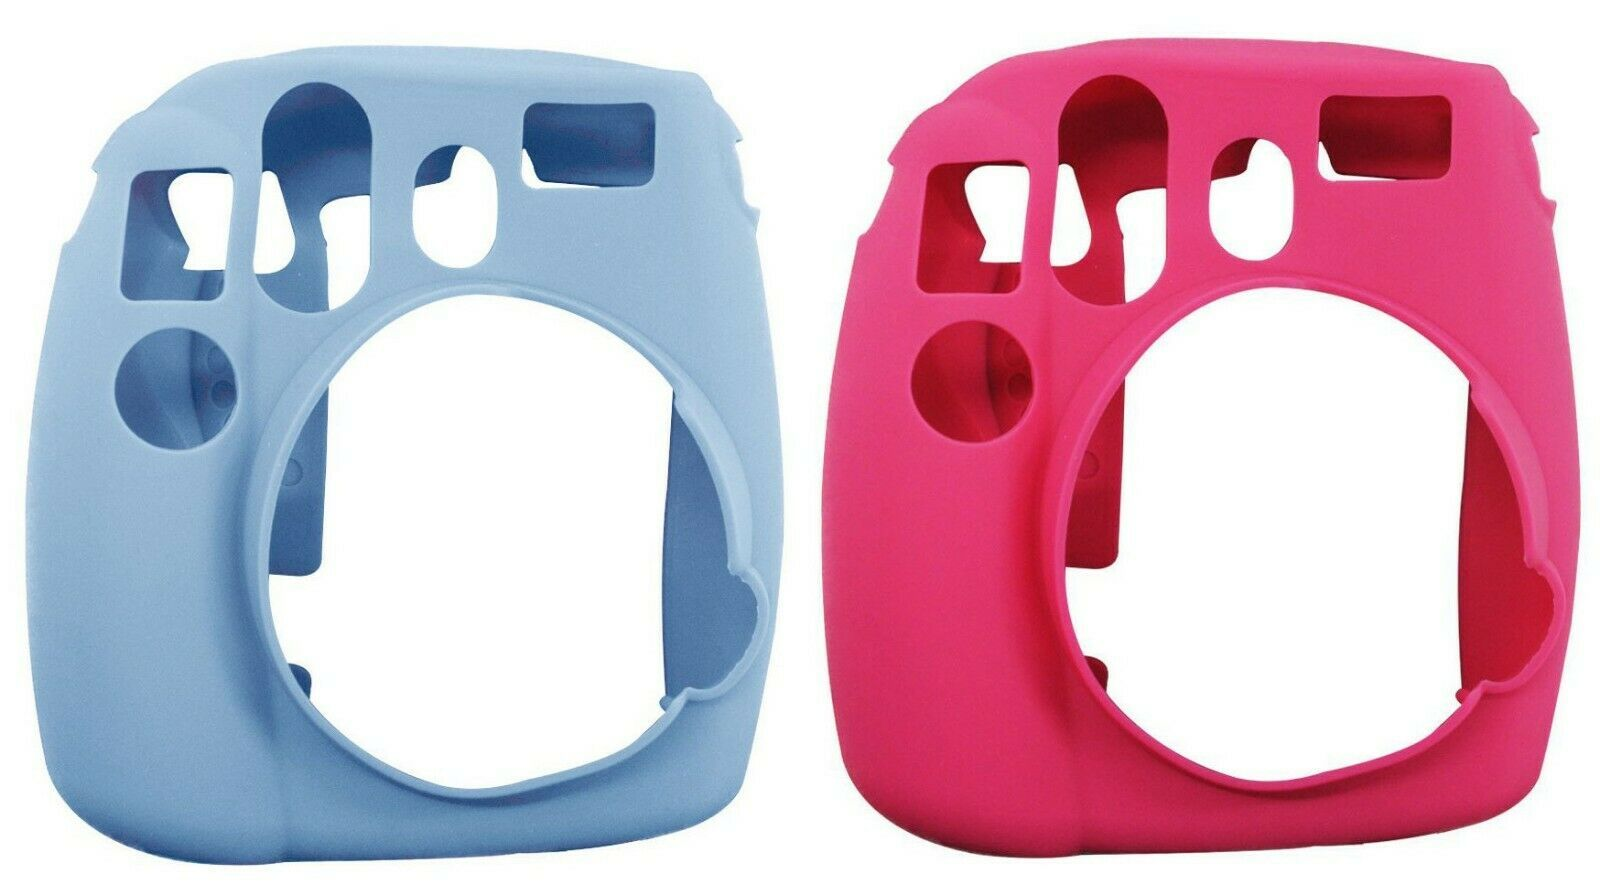 ATNY Instax Instant Camera Silicone Case - Pink or Blue NEW